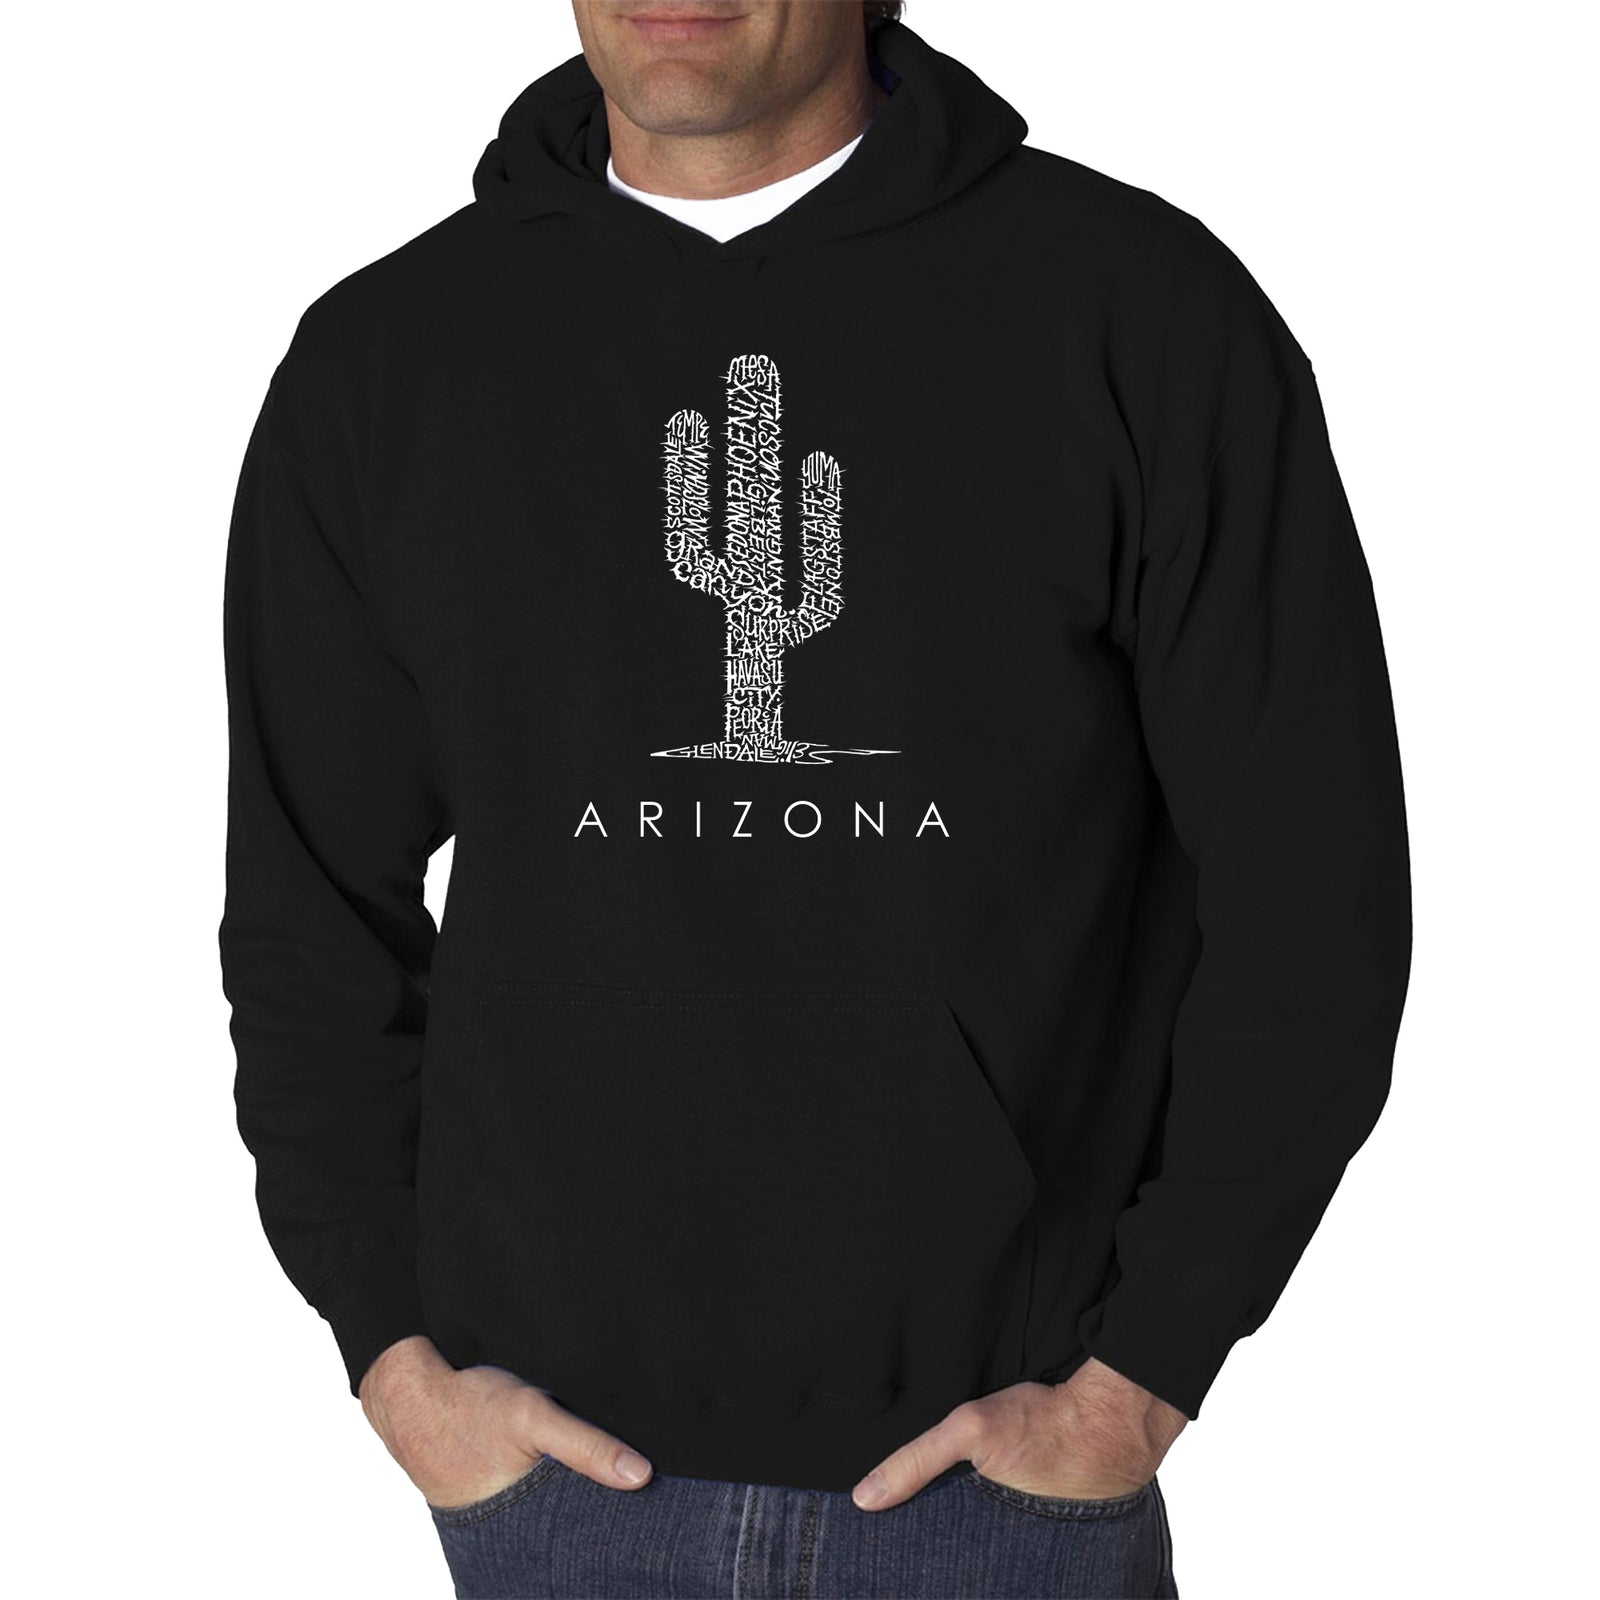 Los Angeles Pop Art Men's Hooded Sweatshirt - Arizona Cities